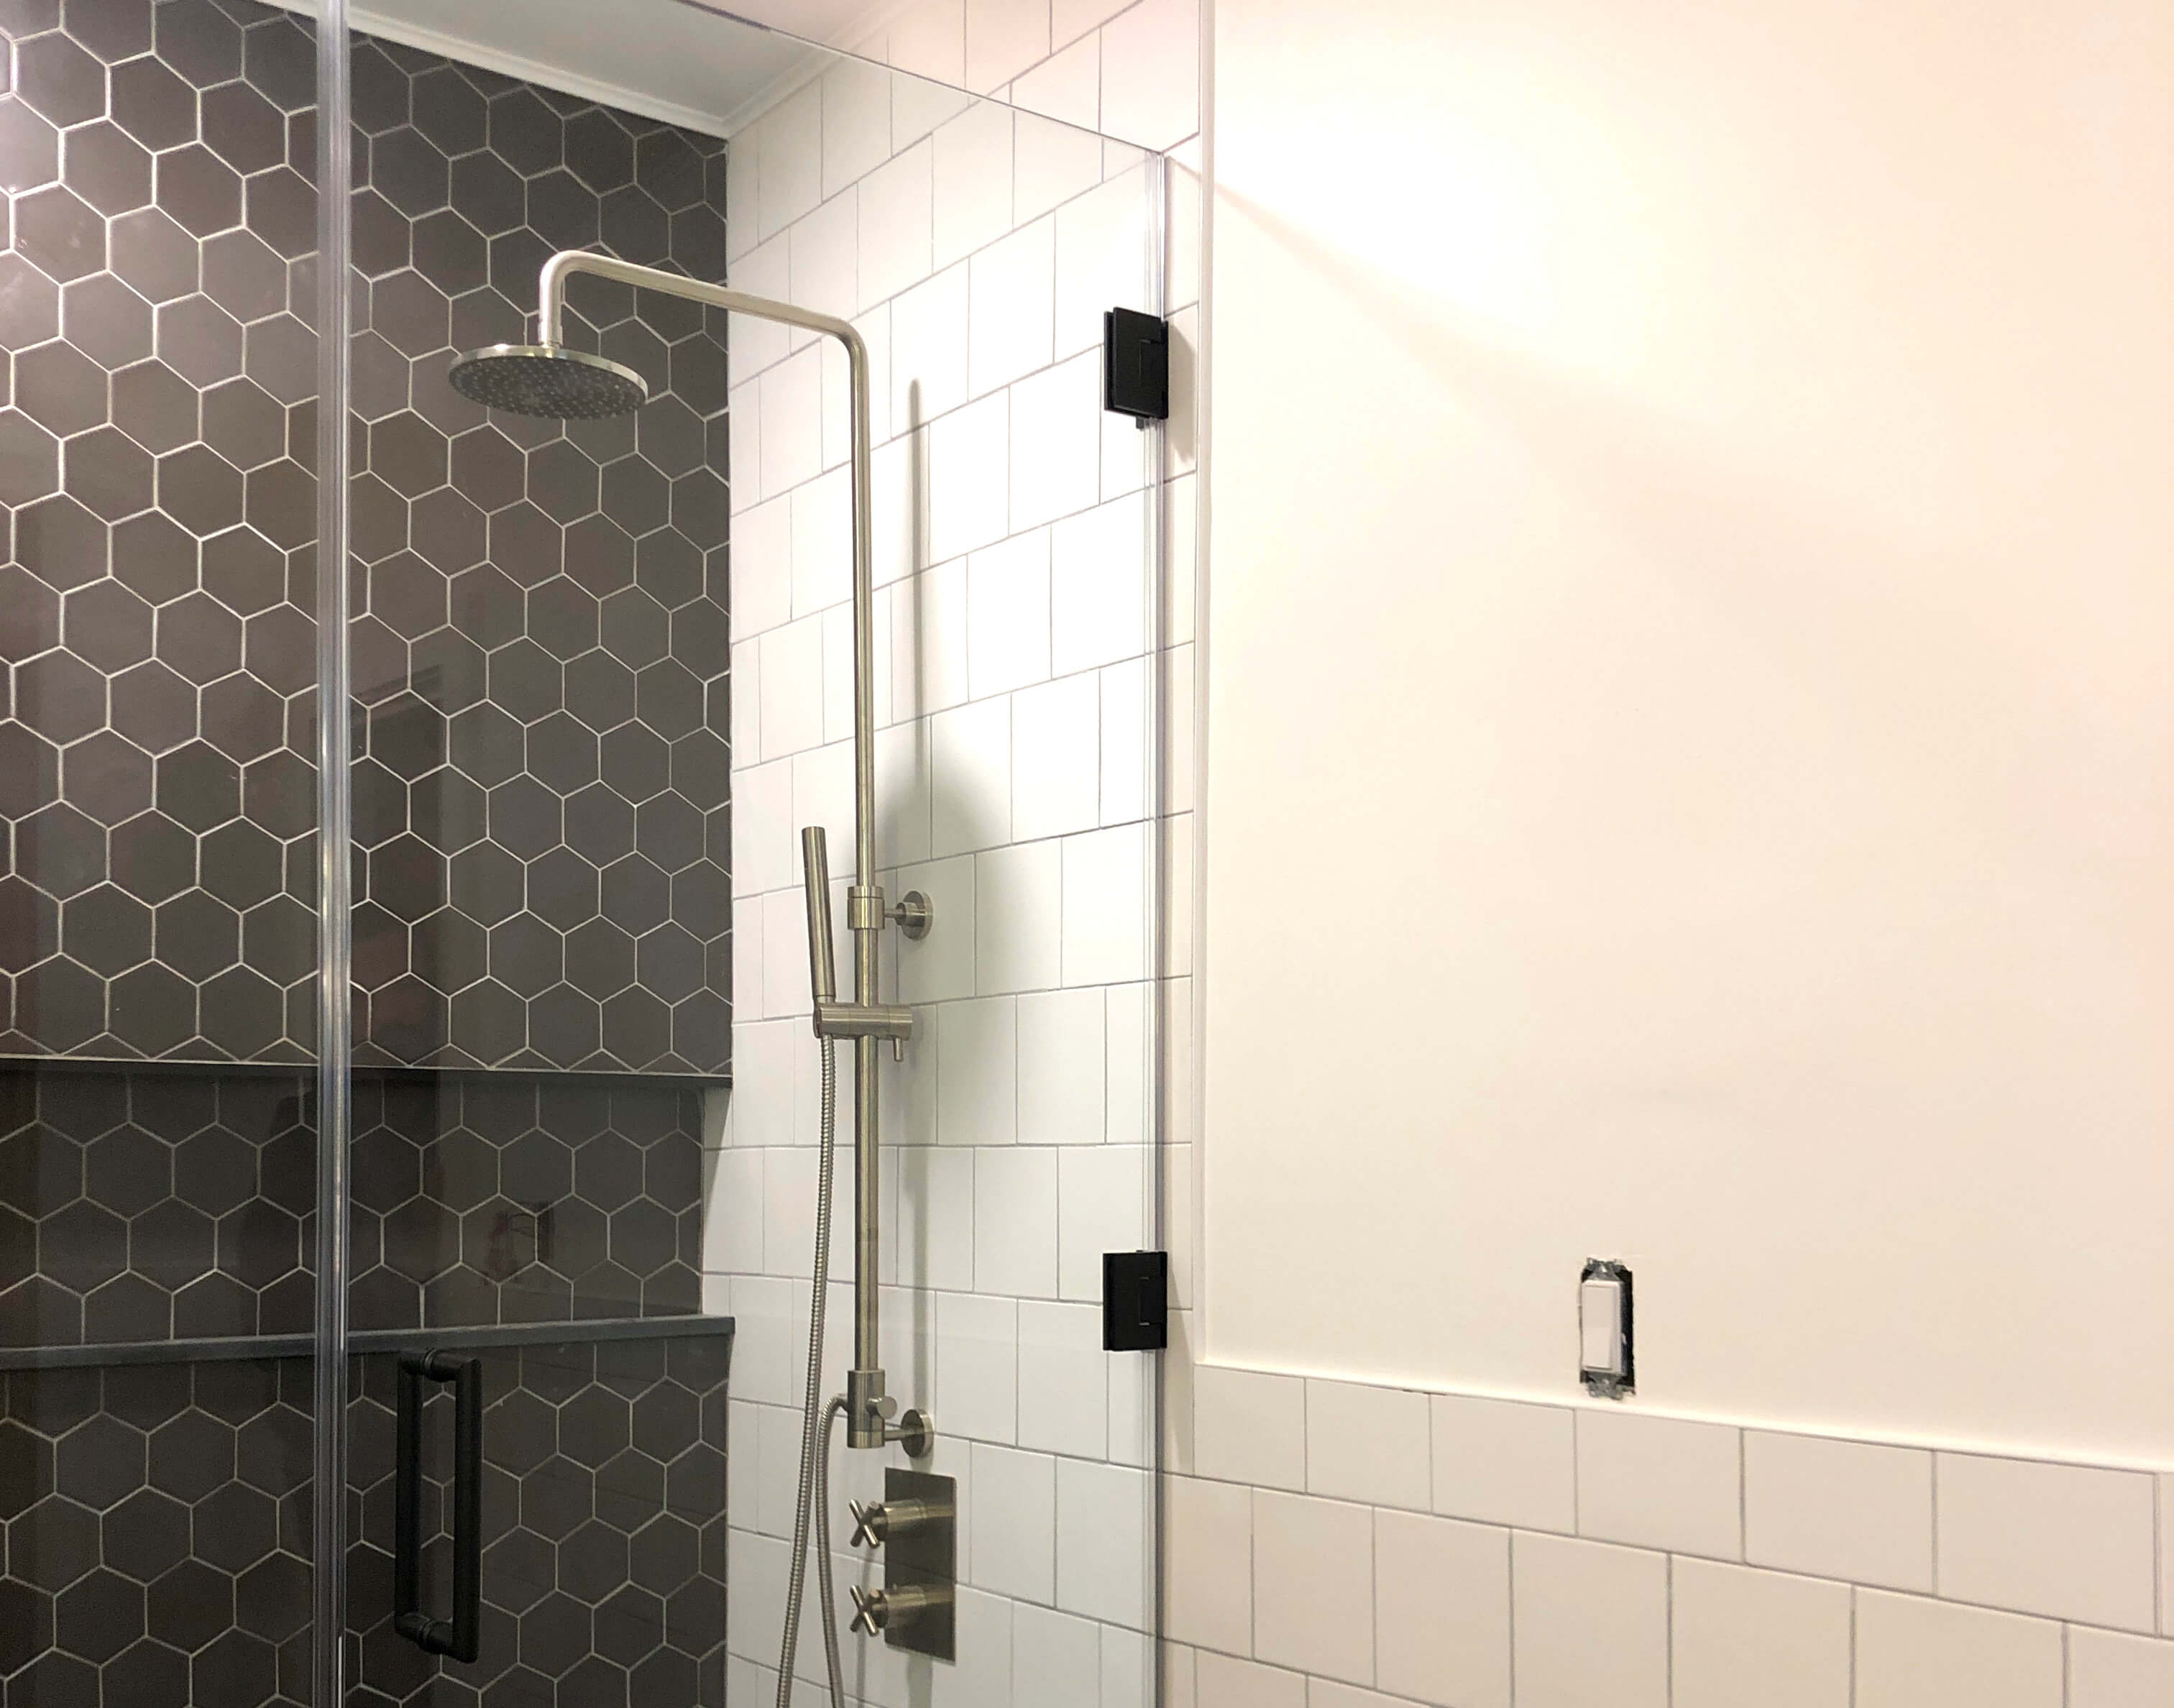 glassy with shower and tub enclosures